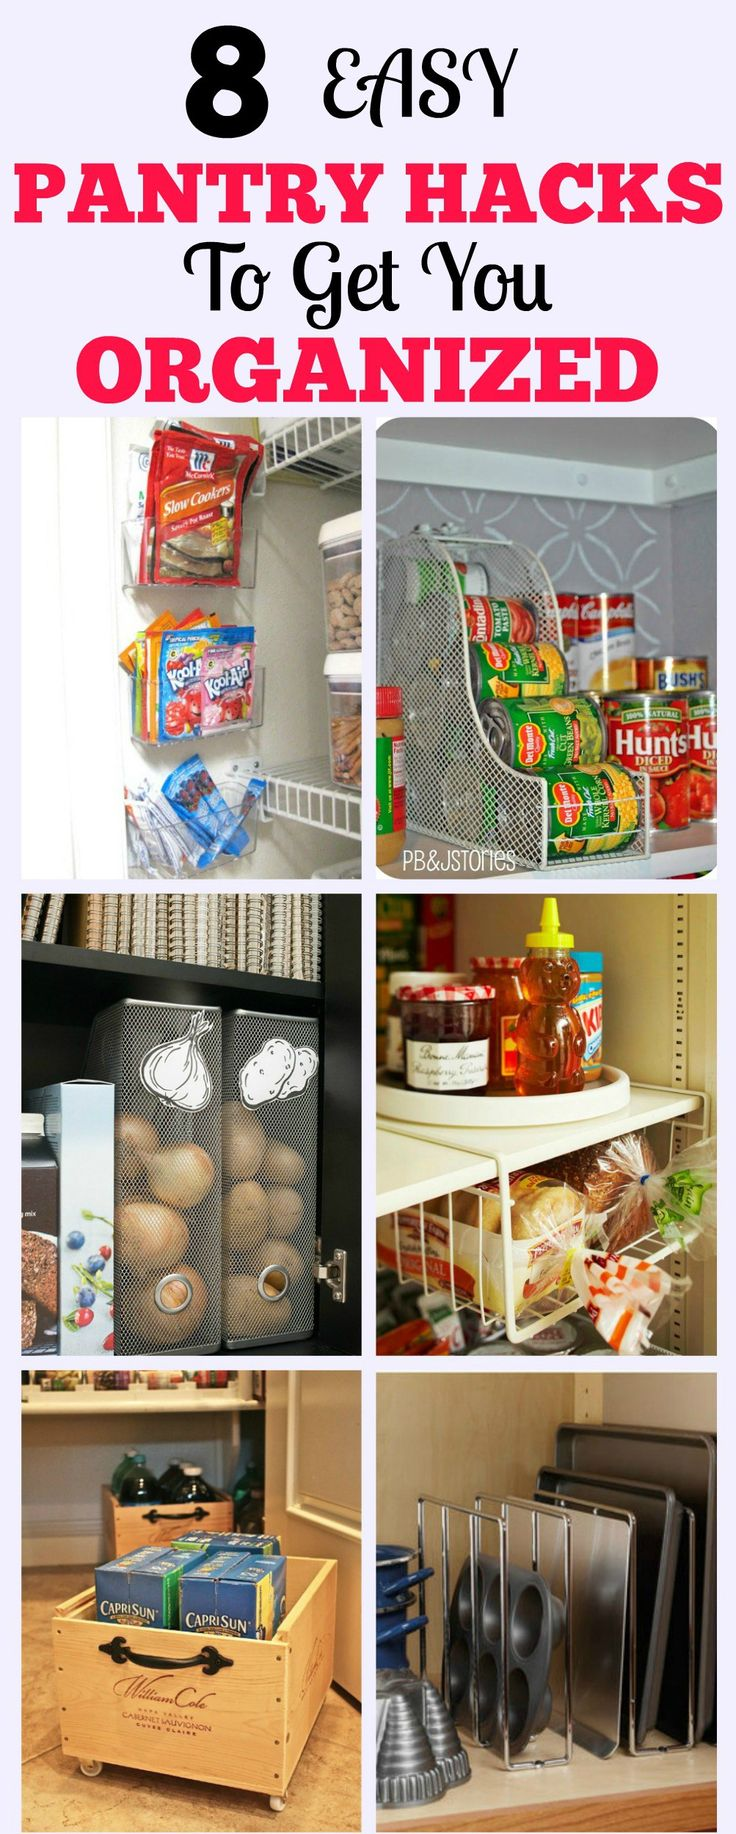 Organized Pantry | Pantry Hacks | Organize Your Pantry | Pantry Organization | Food Organization